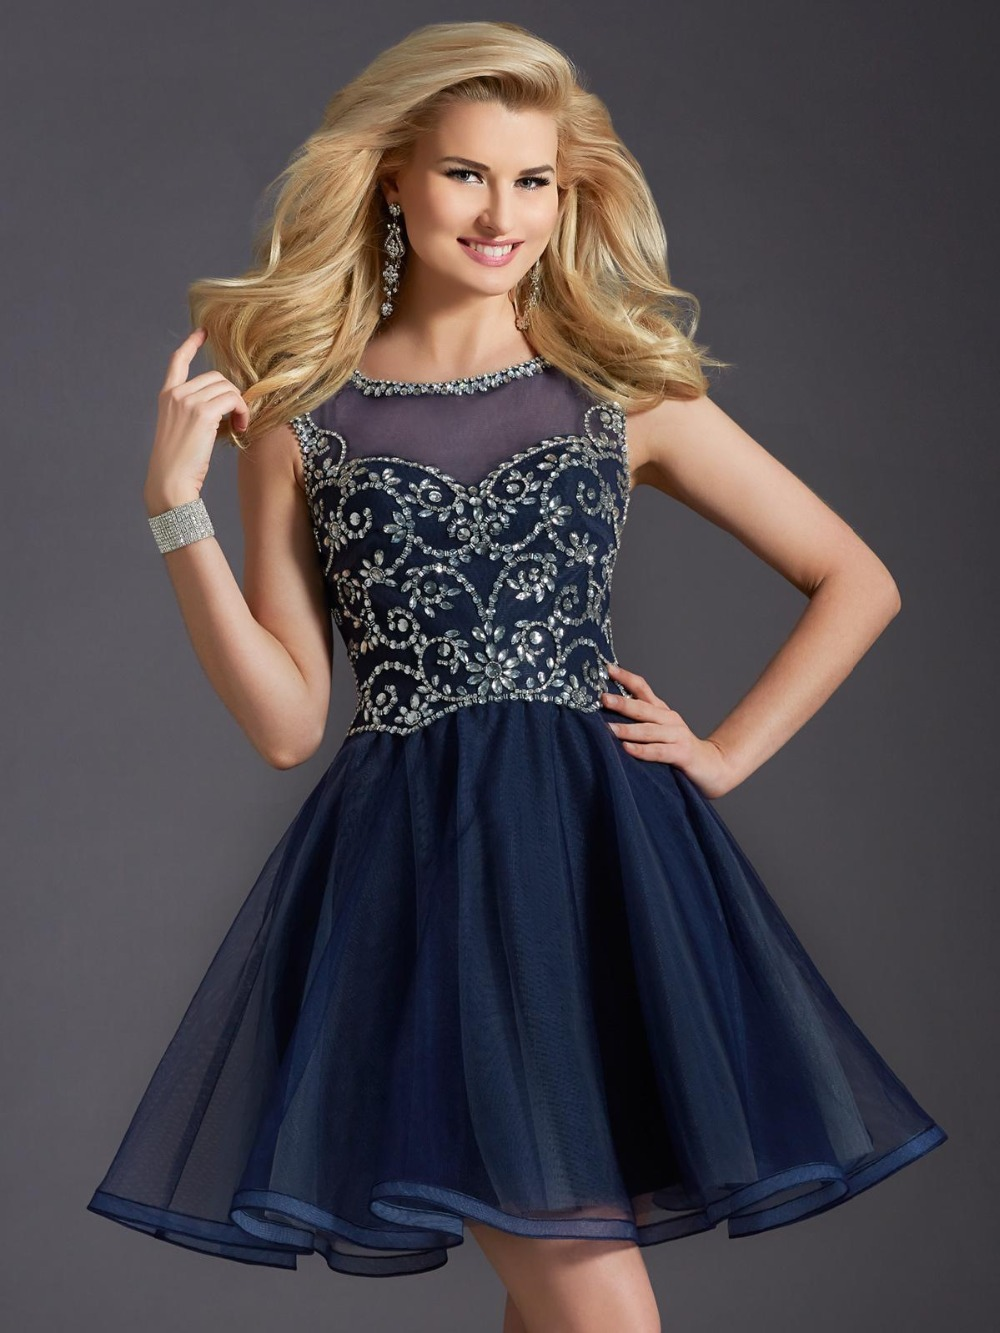 Aliexpress.com : Buy Dark Blue Short Homecoming Dress For Teens ...